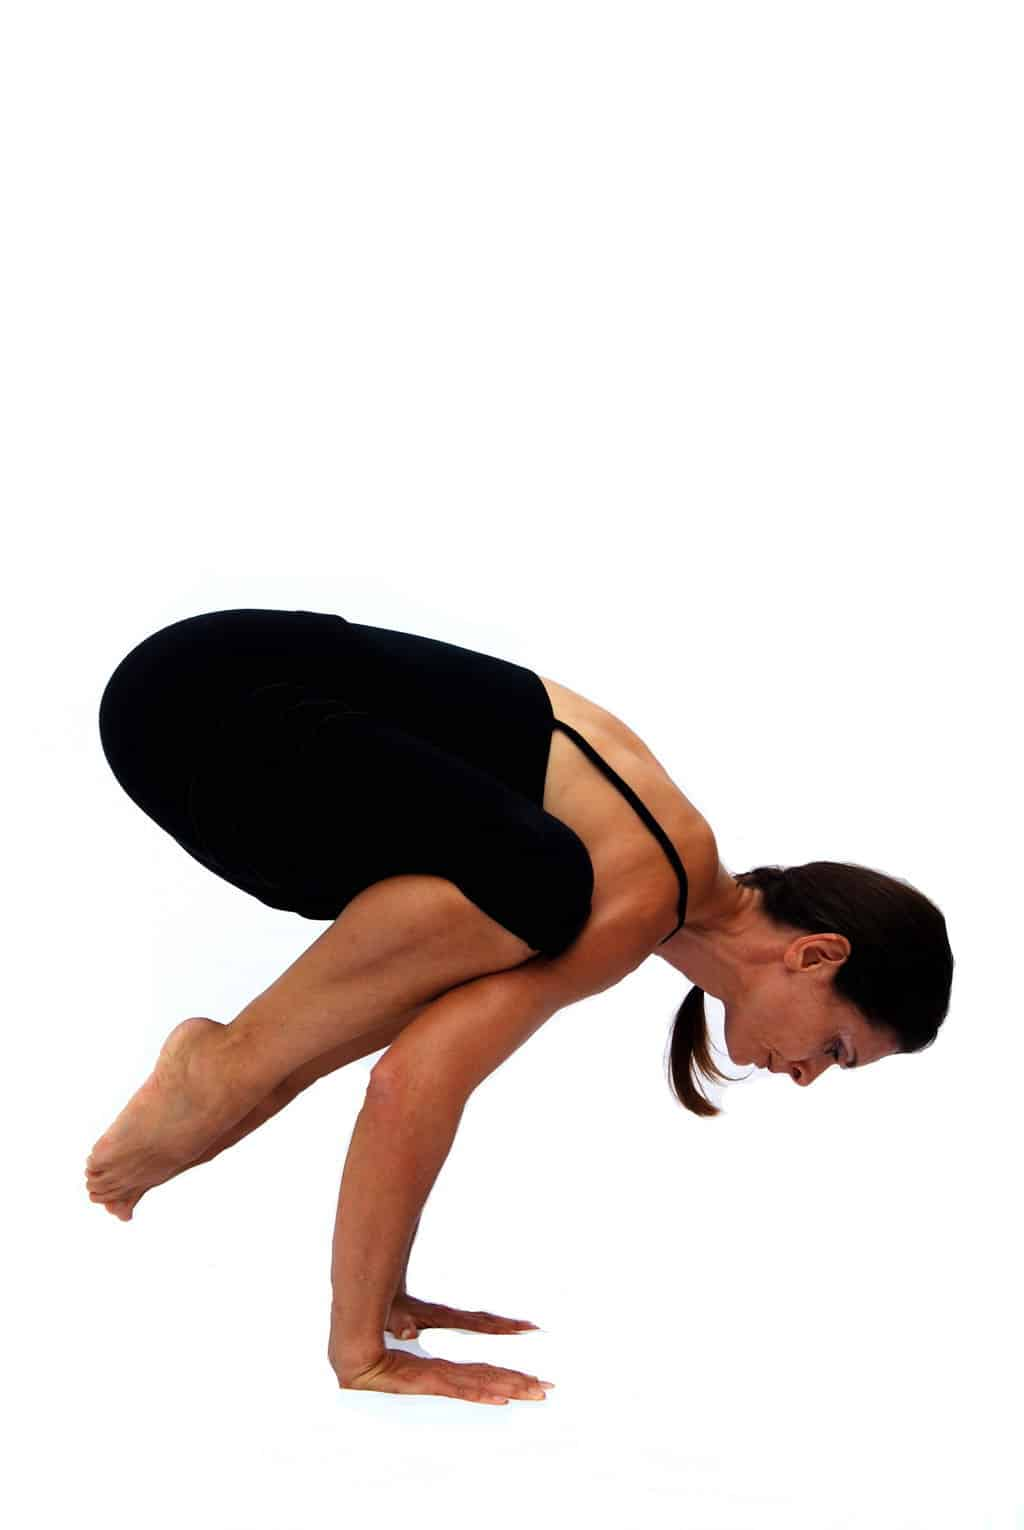 Bakasana crow pose preparation for crane pose arm balance Opale Yoga Ibiza